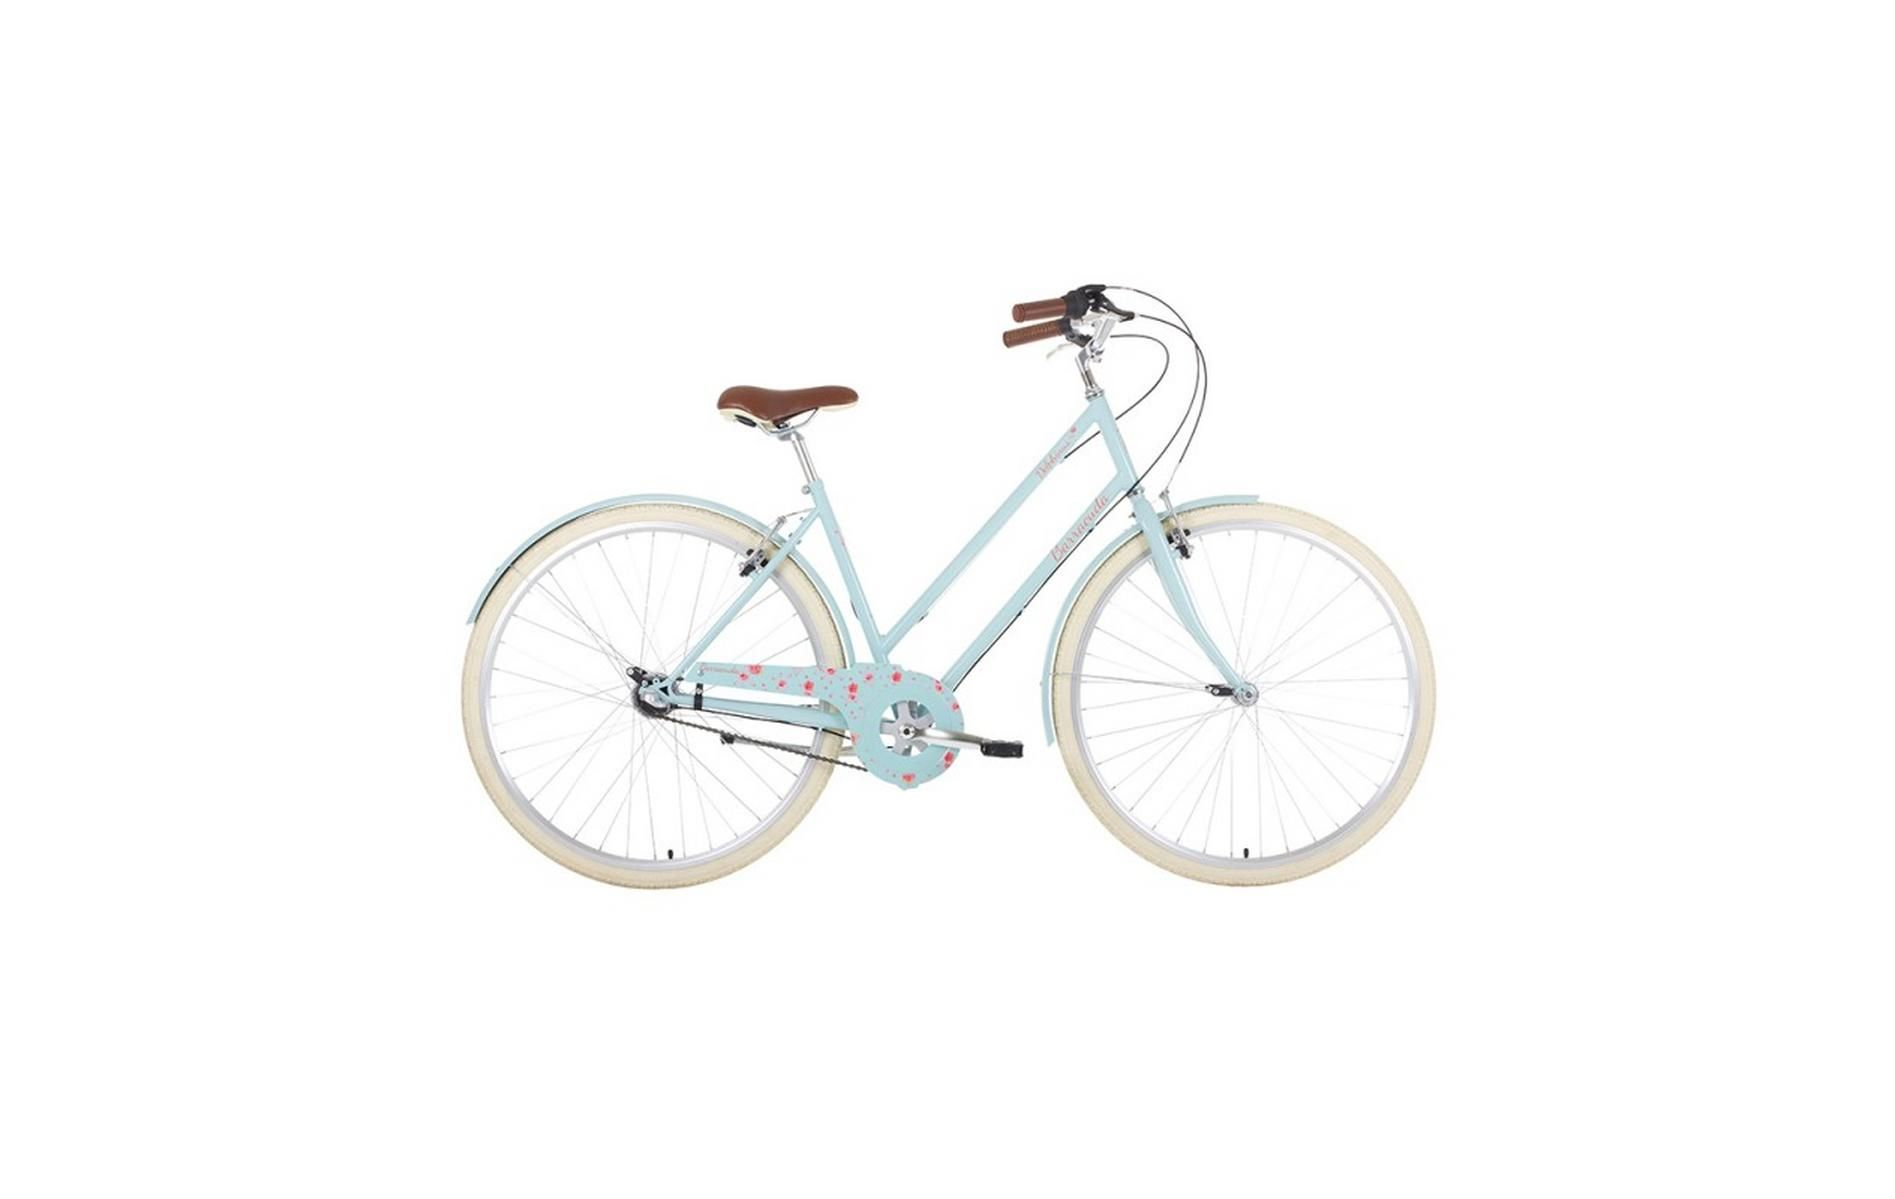 Barracuda Delphinus 3 19in Vintage Bike Blue Hybrid Bike